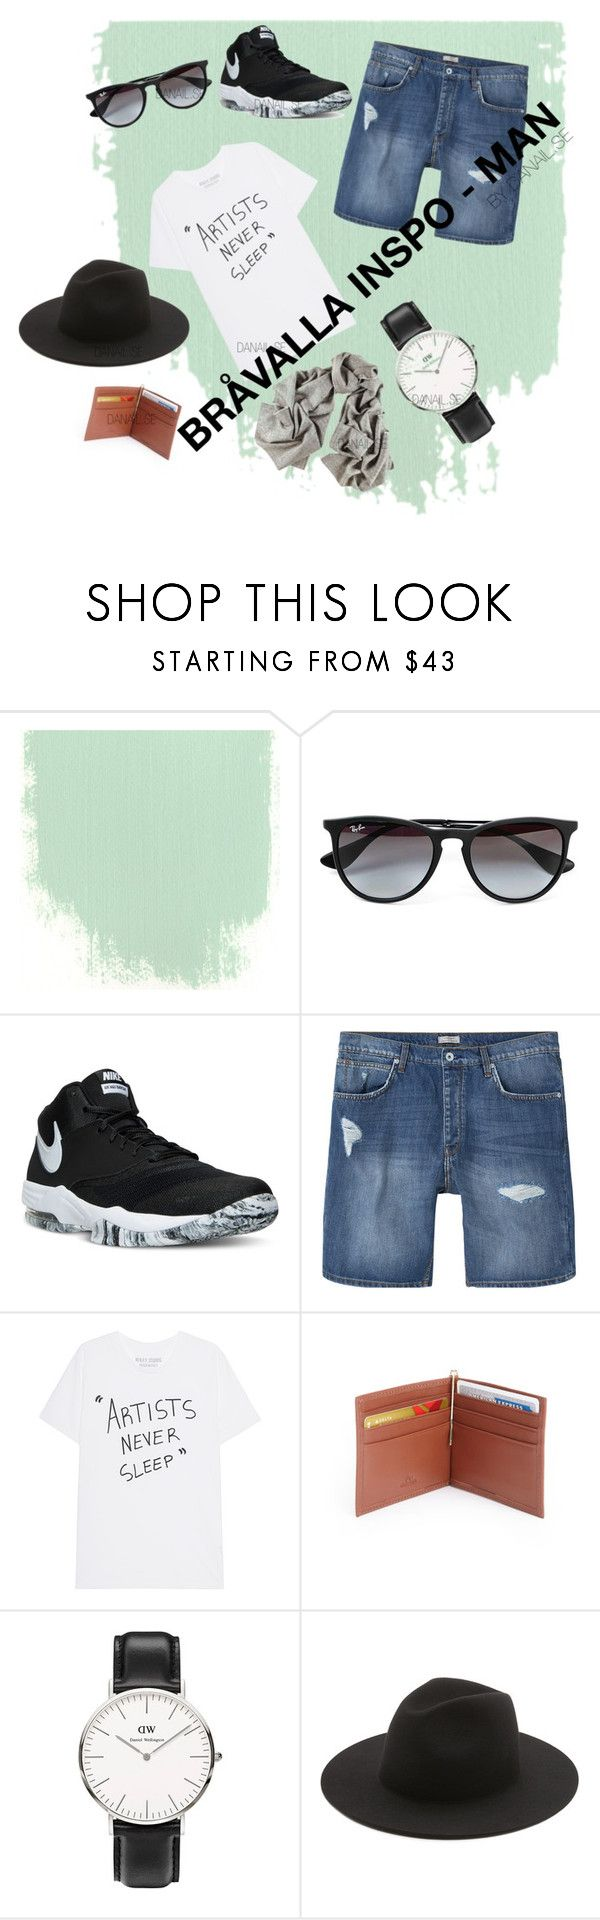 """Bråvalla inspo"" by jonaz-danail-grentzelius on Polyvore featuring Topman, NIKE, MANGO MAN, Royce Leather, Daniel Wellington and Études"